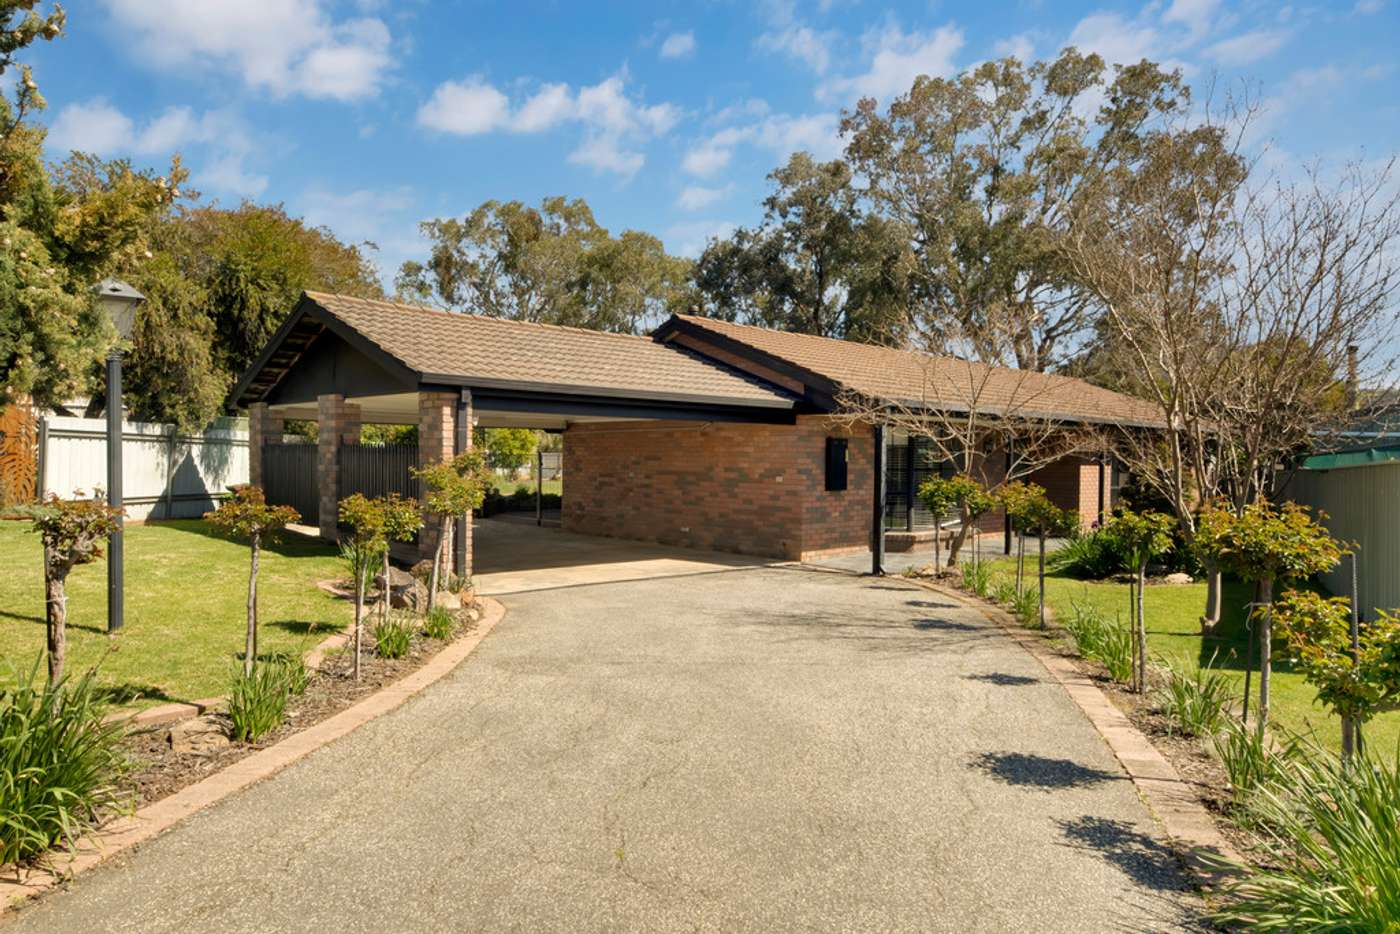 Main view of Homely house listing, 12 Prosper Court, Wodonga VIC 3690